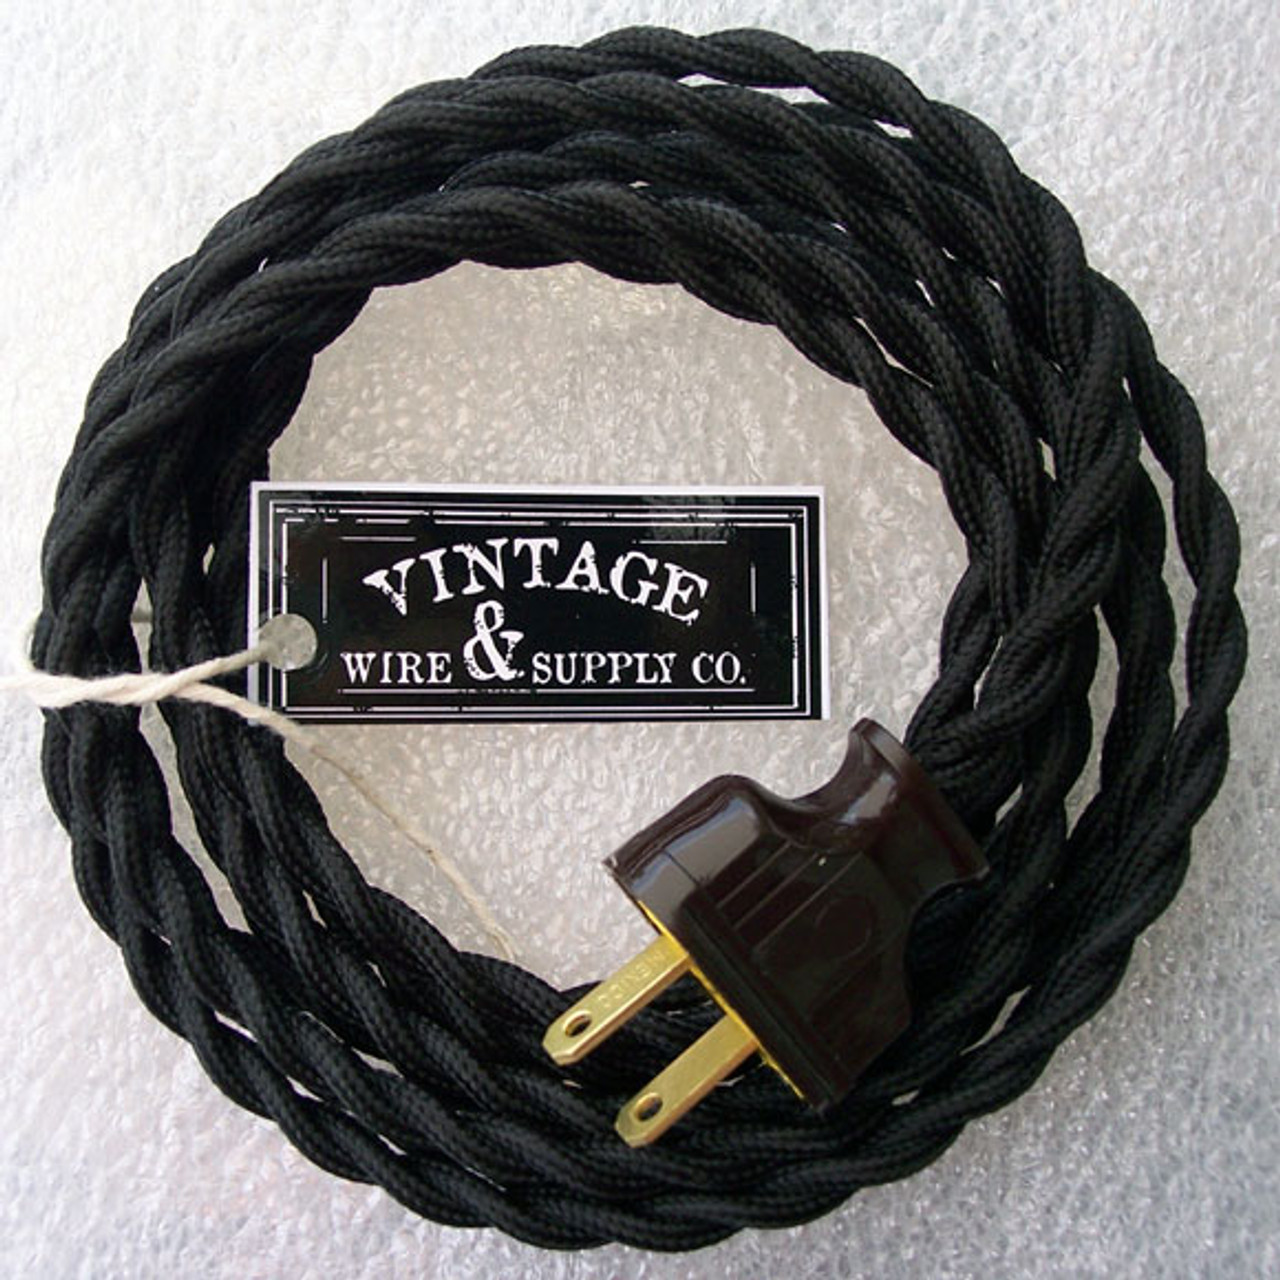 3 Conductor Antique Style Cloth Wire Vintage Lights Black Cloth Covered Cord